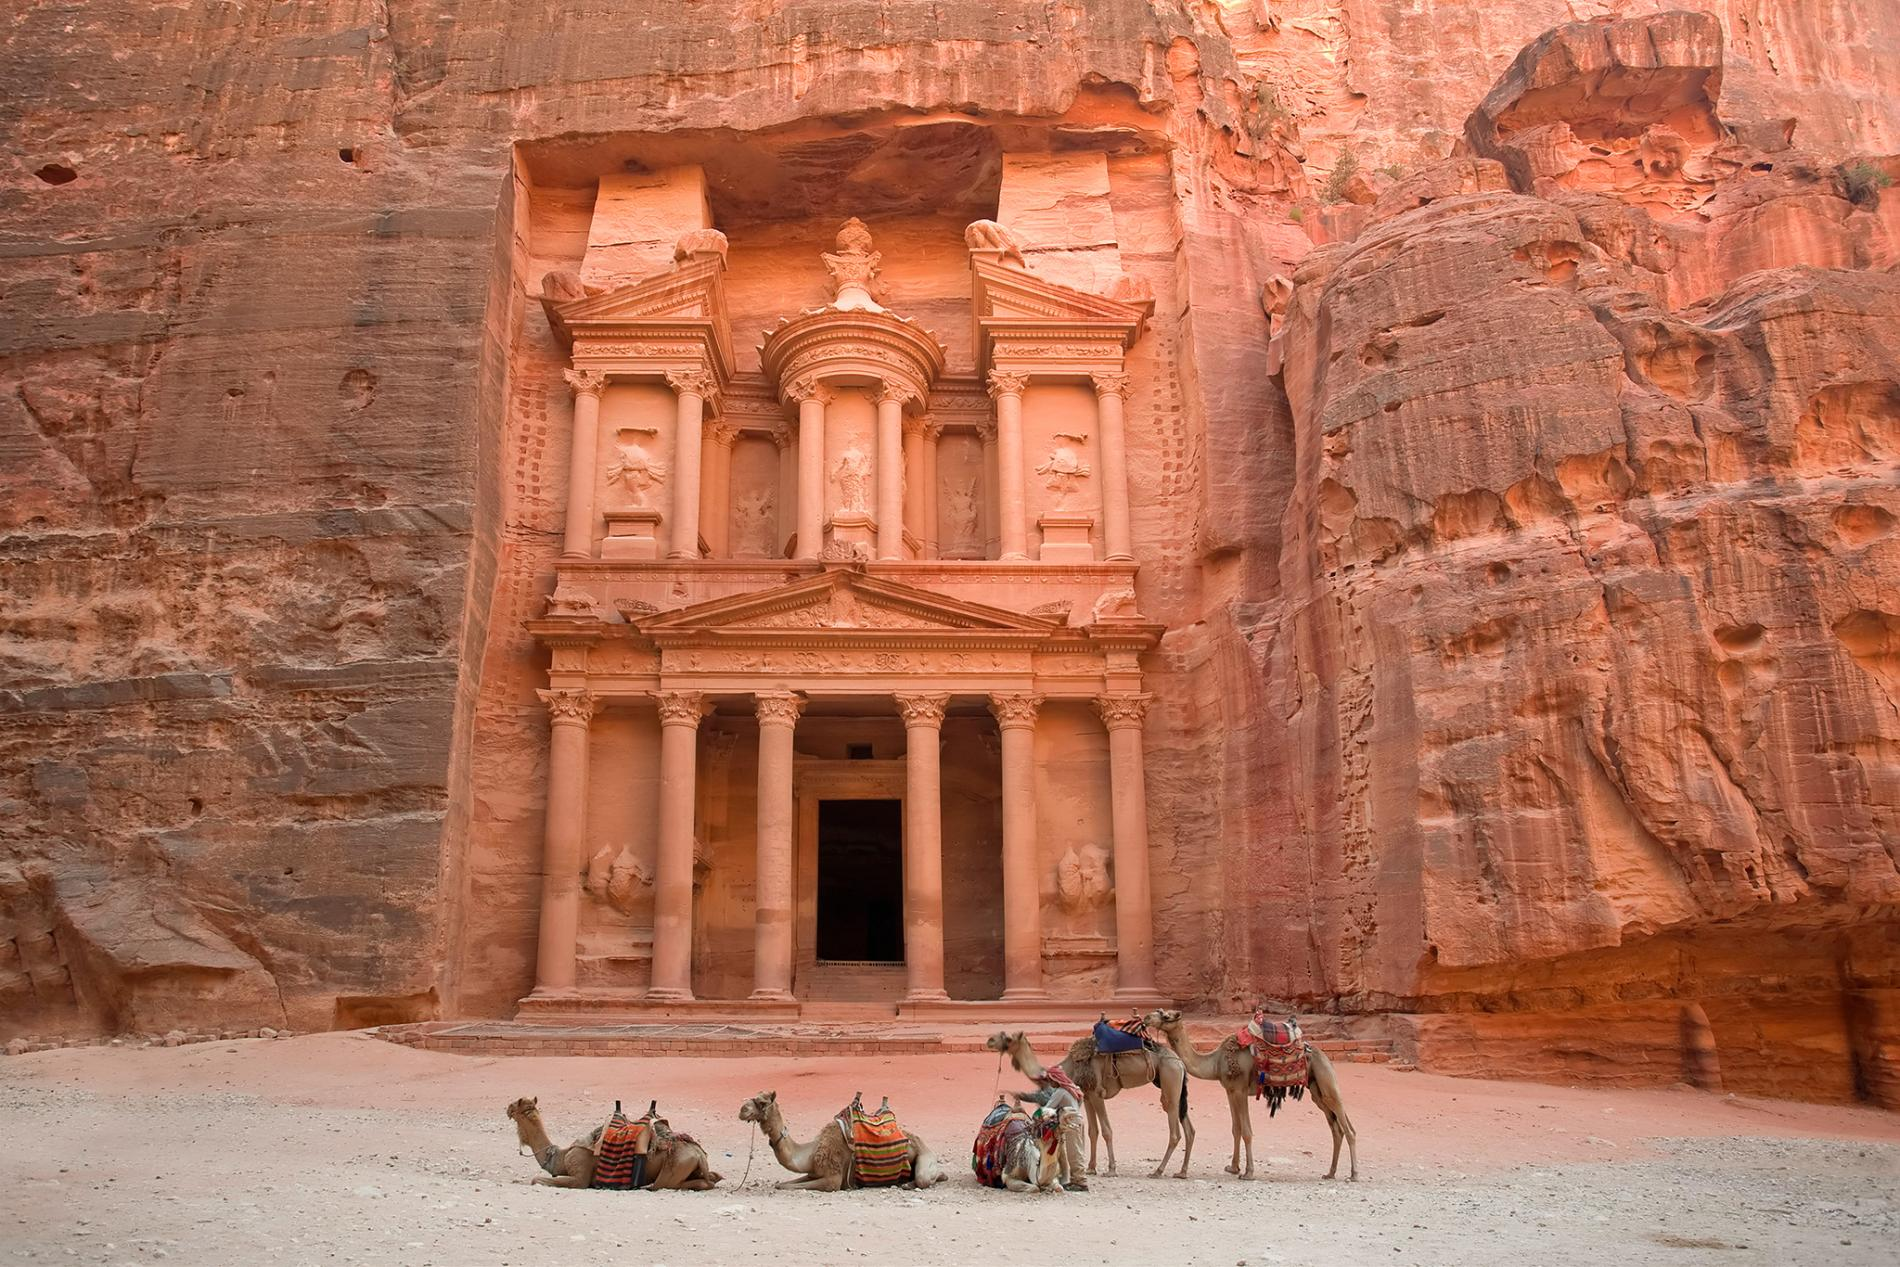 petra-world-heritage-jordan.ngsversion.1490221804161.adapt.1900.1.jpg